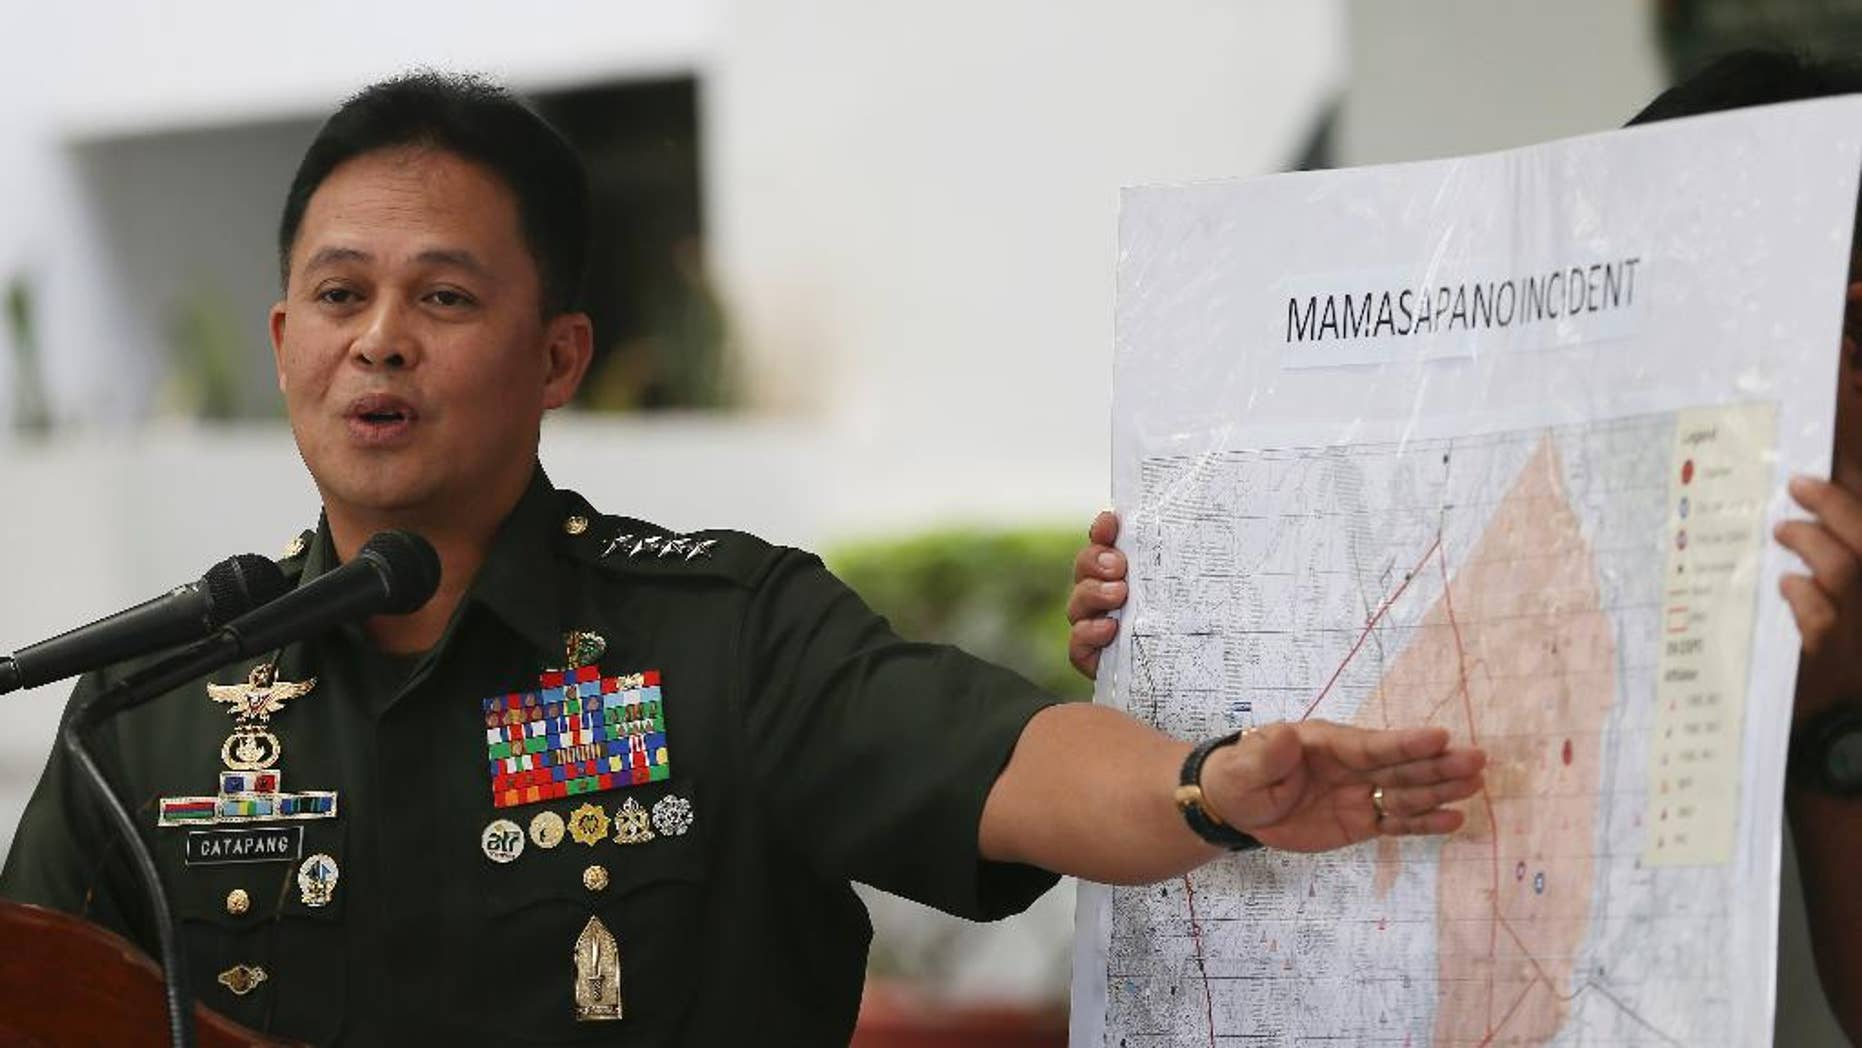 FILE - In this Feb. 4, 2015 file photo, Philippine Armed Forces Chief Gen. Gregorio Pio Catapang points to the map where the alleged clash between elite police commandos known as Special Action Forces (SAF) and Muslim rebels took place on Jan. 25 during a news conference at the Armed Forces of the Philippines headquarters at Camp Aguinaldo in suburban Quezon city, northeast of Manila, Philippines. A monthlong Philippine offensive against hard-line Muslim rebels ended Monday, March 30 after 139 insurgents were killed, 12 others were captured and bomb-making strongholds were seized by troops, the military chief said. (AP Photo/Bullit Marquez, File)